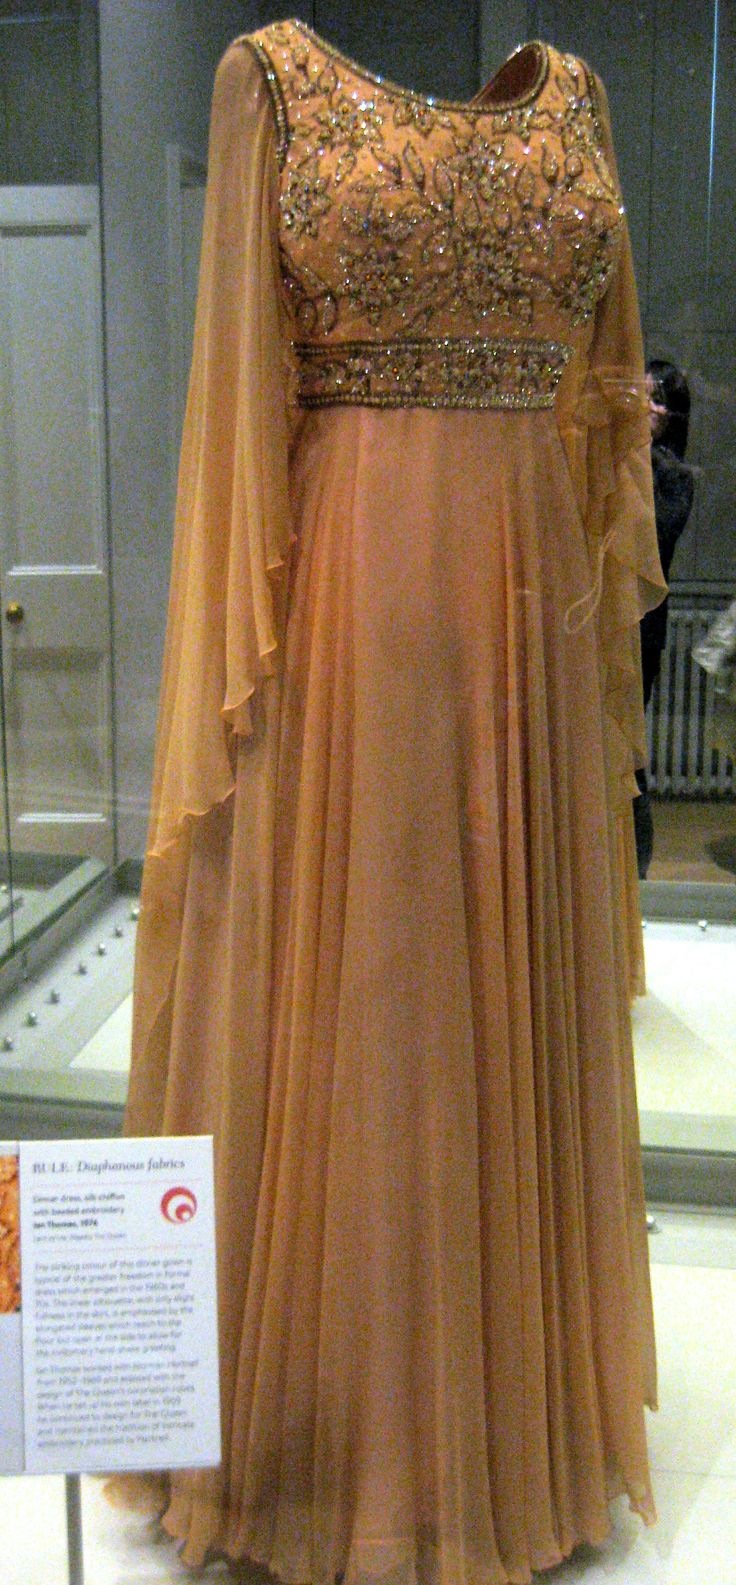 """1976 Dinner dress by Ian Thomas worn by Queen Elizabeth II at Kensington Palace, London - From the curators' comments: """"The striking colour of this dinner gown is typical of the greater freedom in formal dress which emerged in the 1960s and 70s. The linear silhouette, with only slight fullness in the skirt, is emphasised by the elongated sleeves which reach to the floor but open at the side to allow for the customary hand-shake greeting."""""""